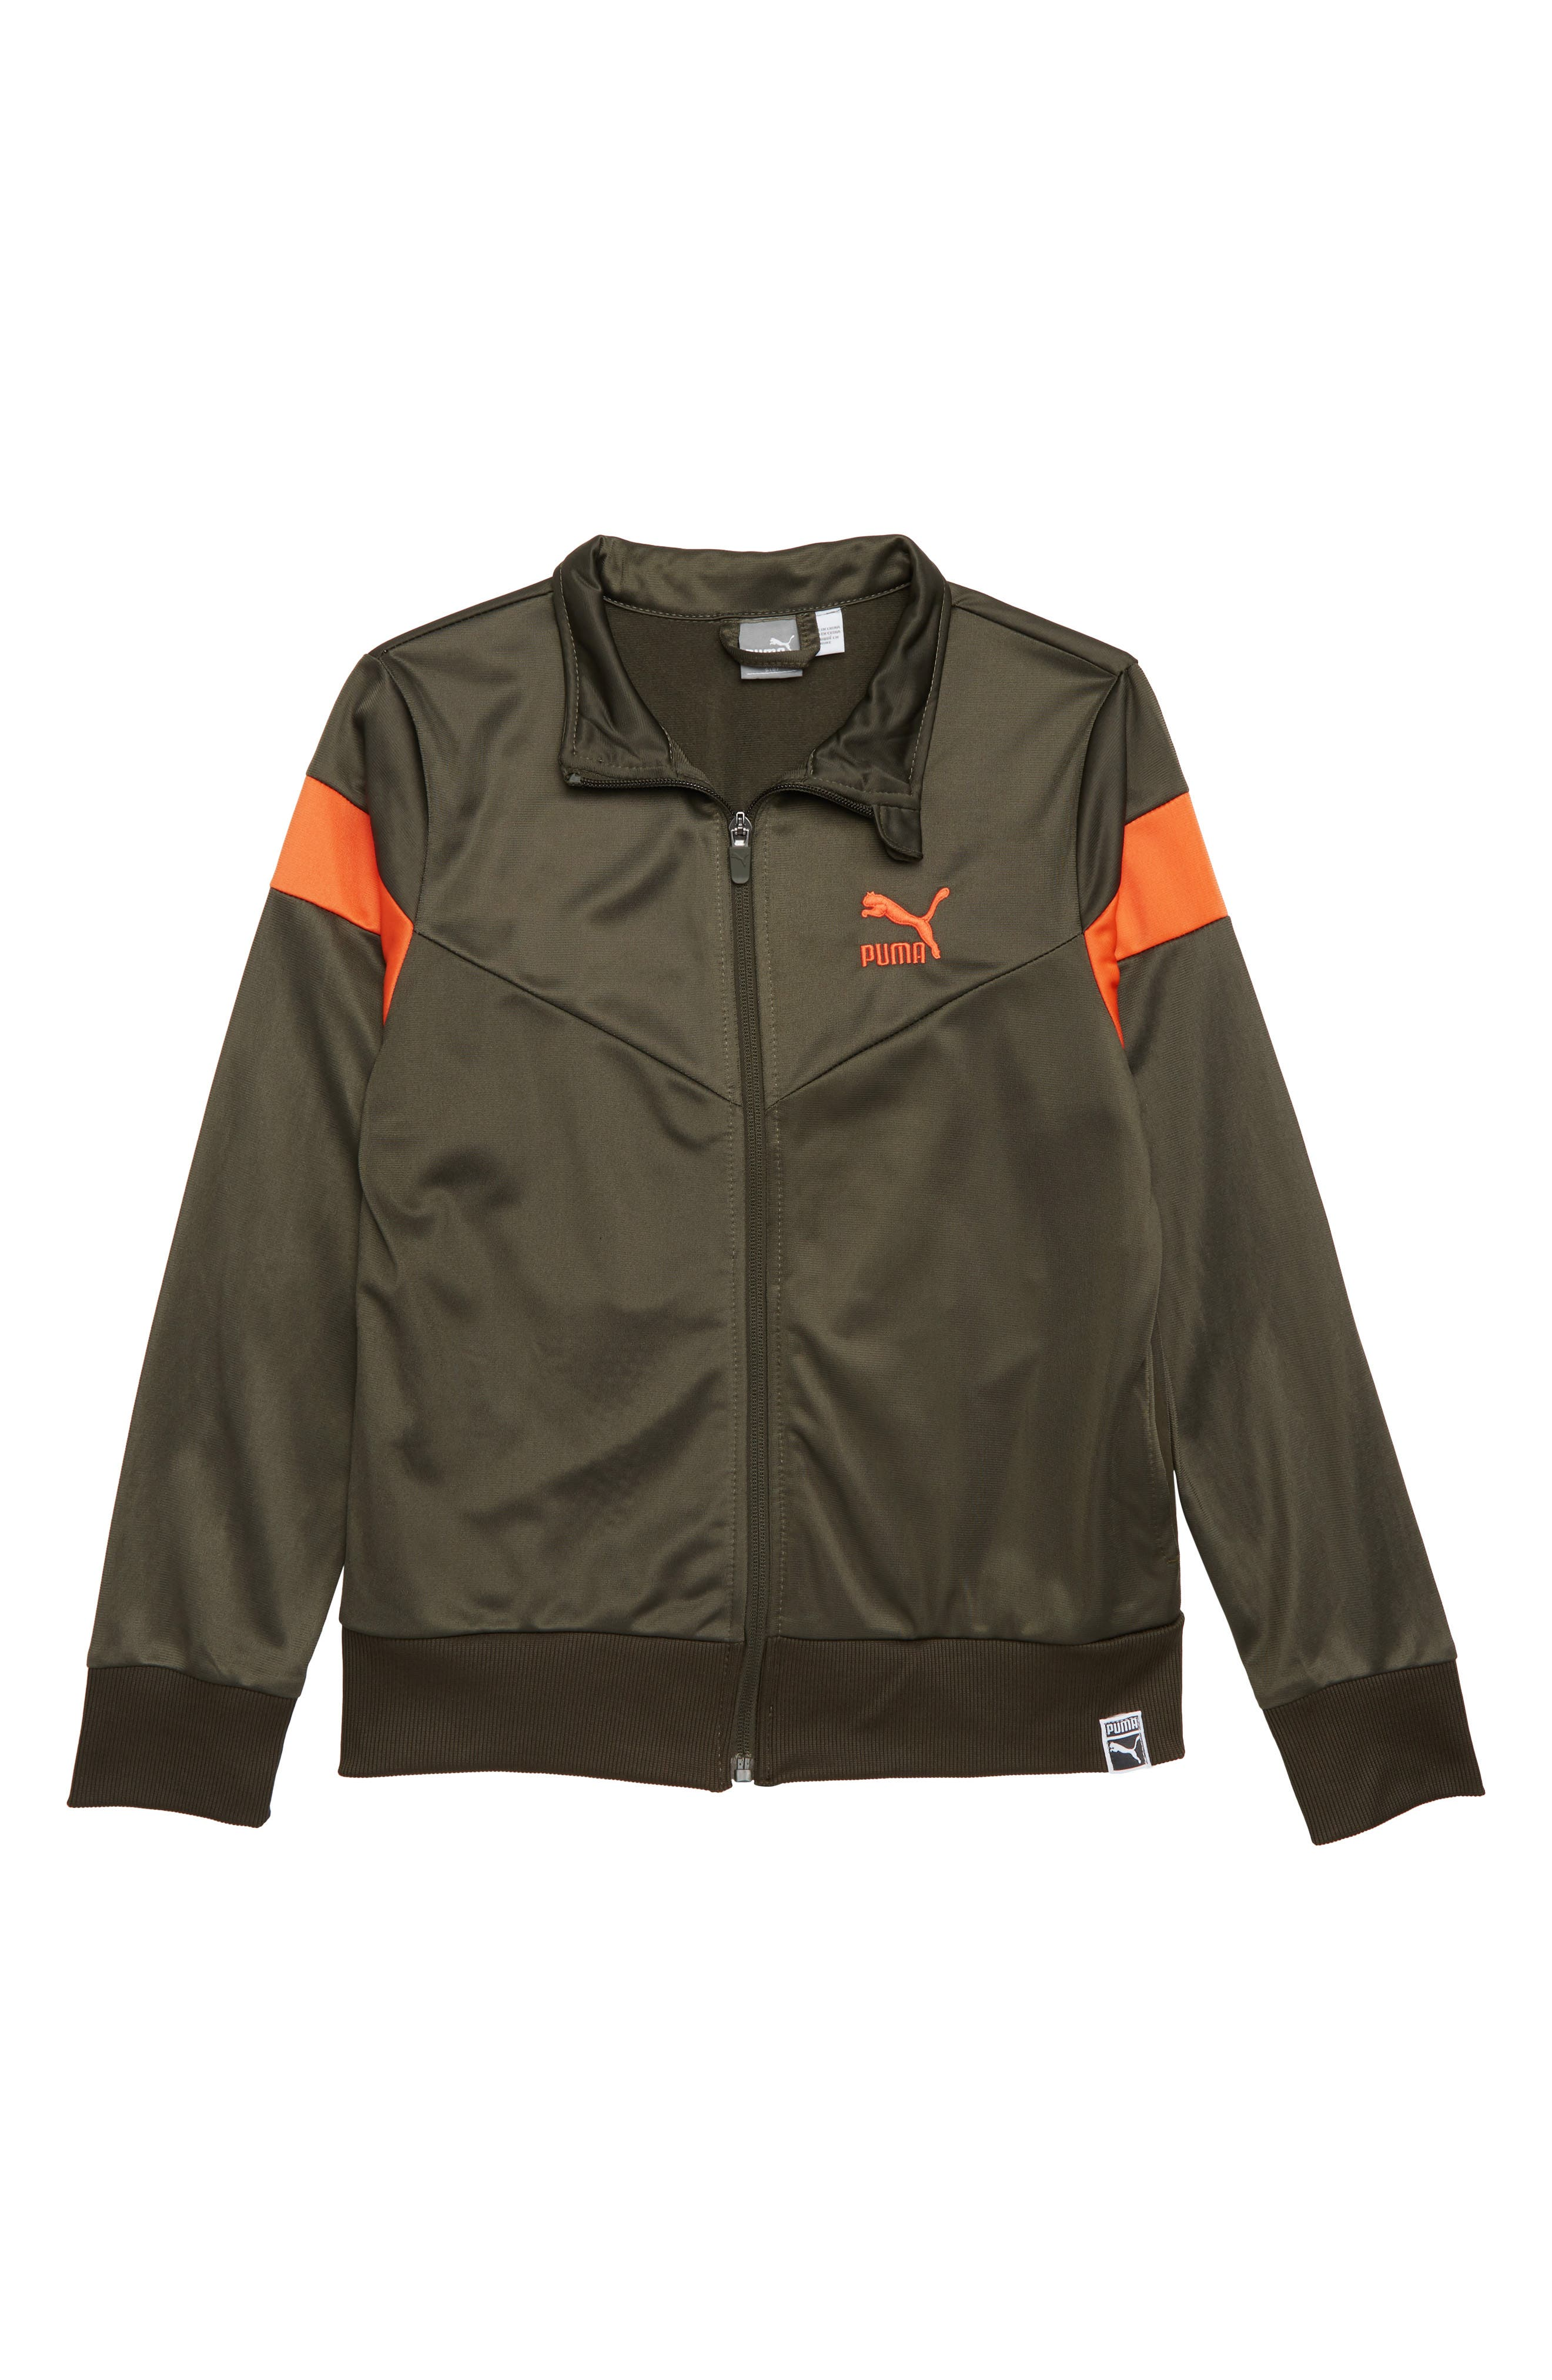 Tricot Track Jacket,                             Main thumbnail 1, color,                             FOREST NIGHT